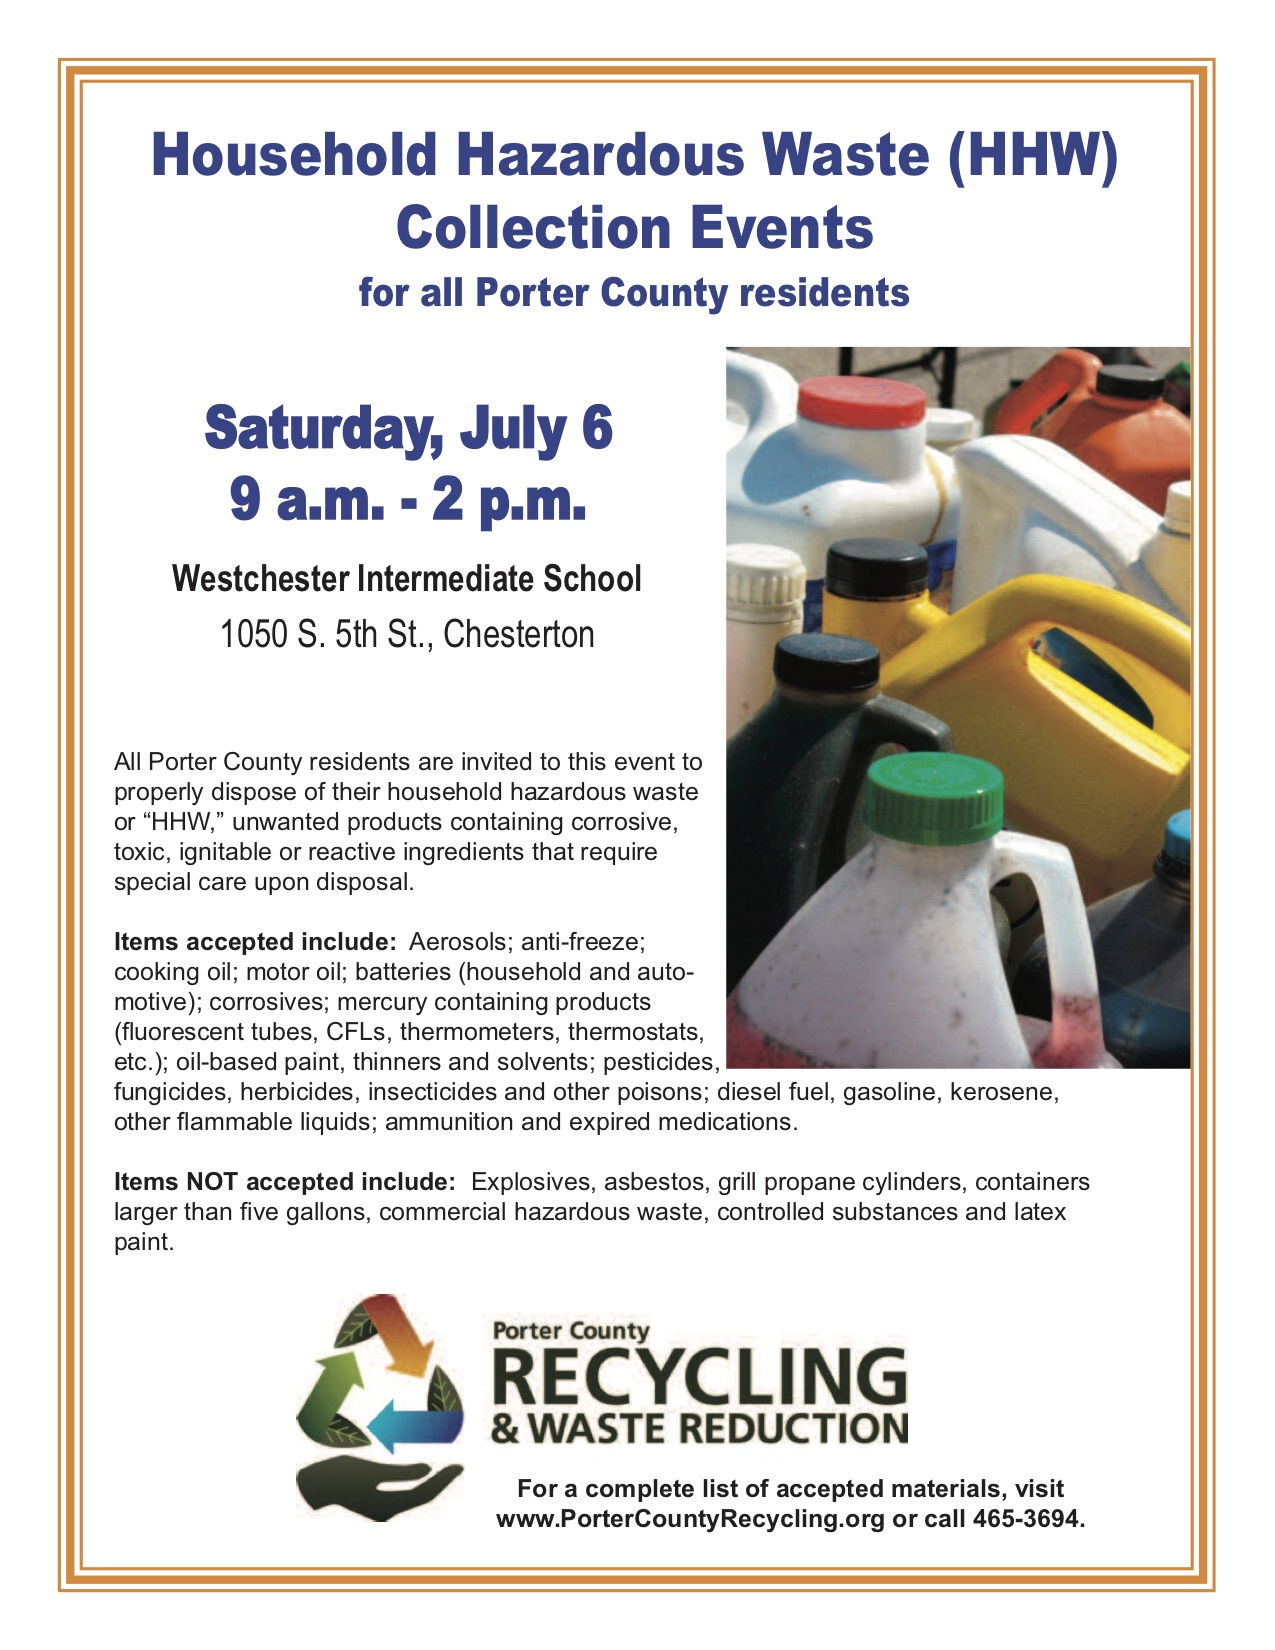 Chemical and fuel collection in Chesterton